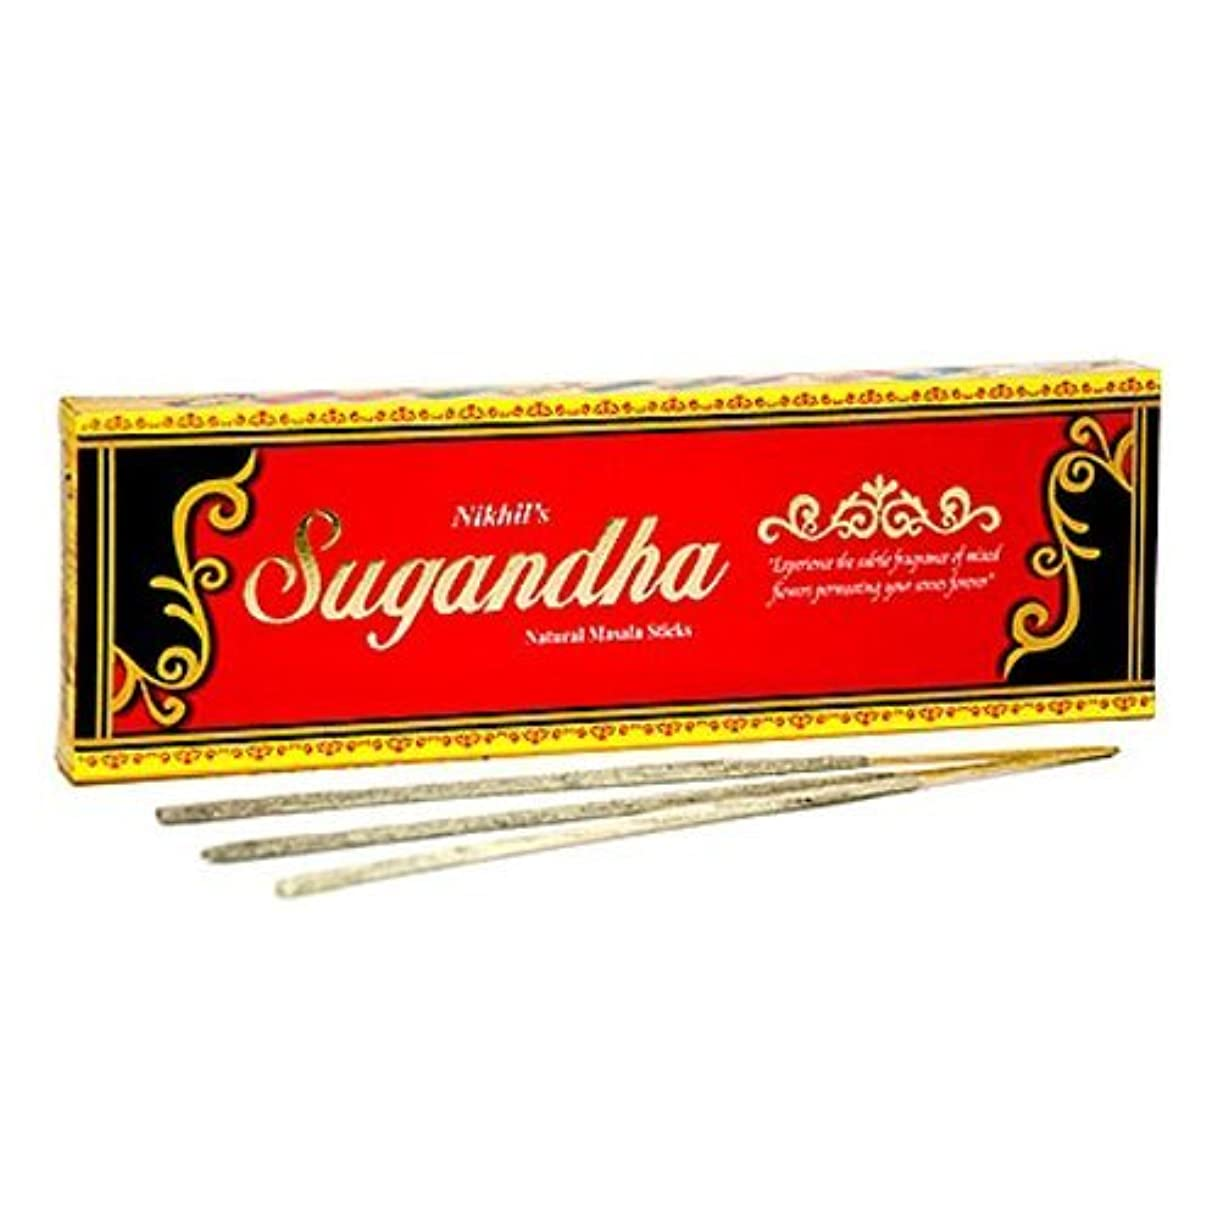 機密セージ適用済みNikhil Sugandha Natural Incense - 2 Packs, 50 Grammes per Pack